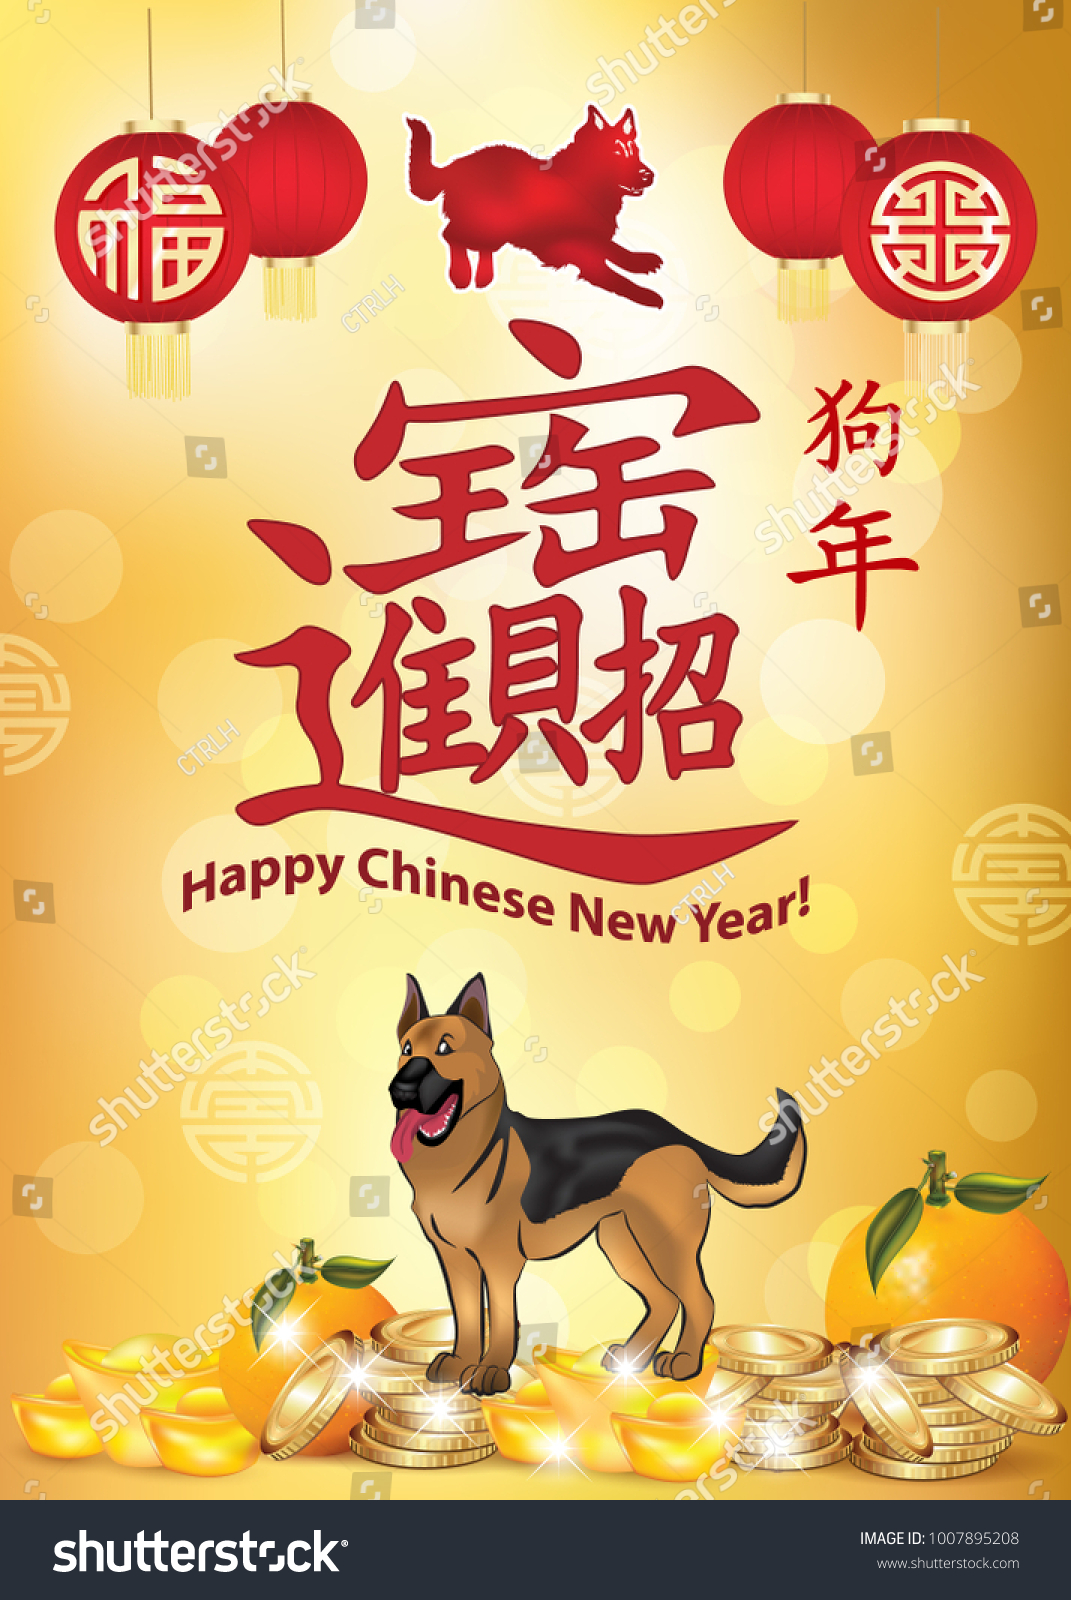 Happy Chinese New Year 2018 Greeting Stock Illustration 1007895208